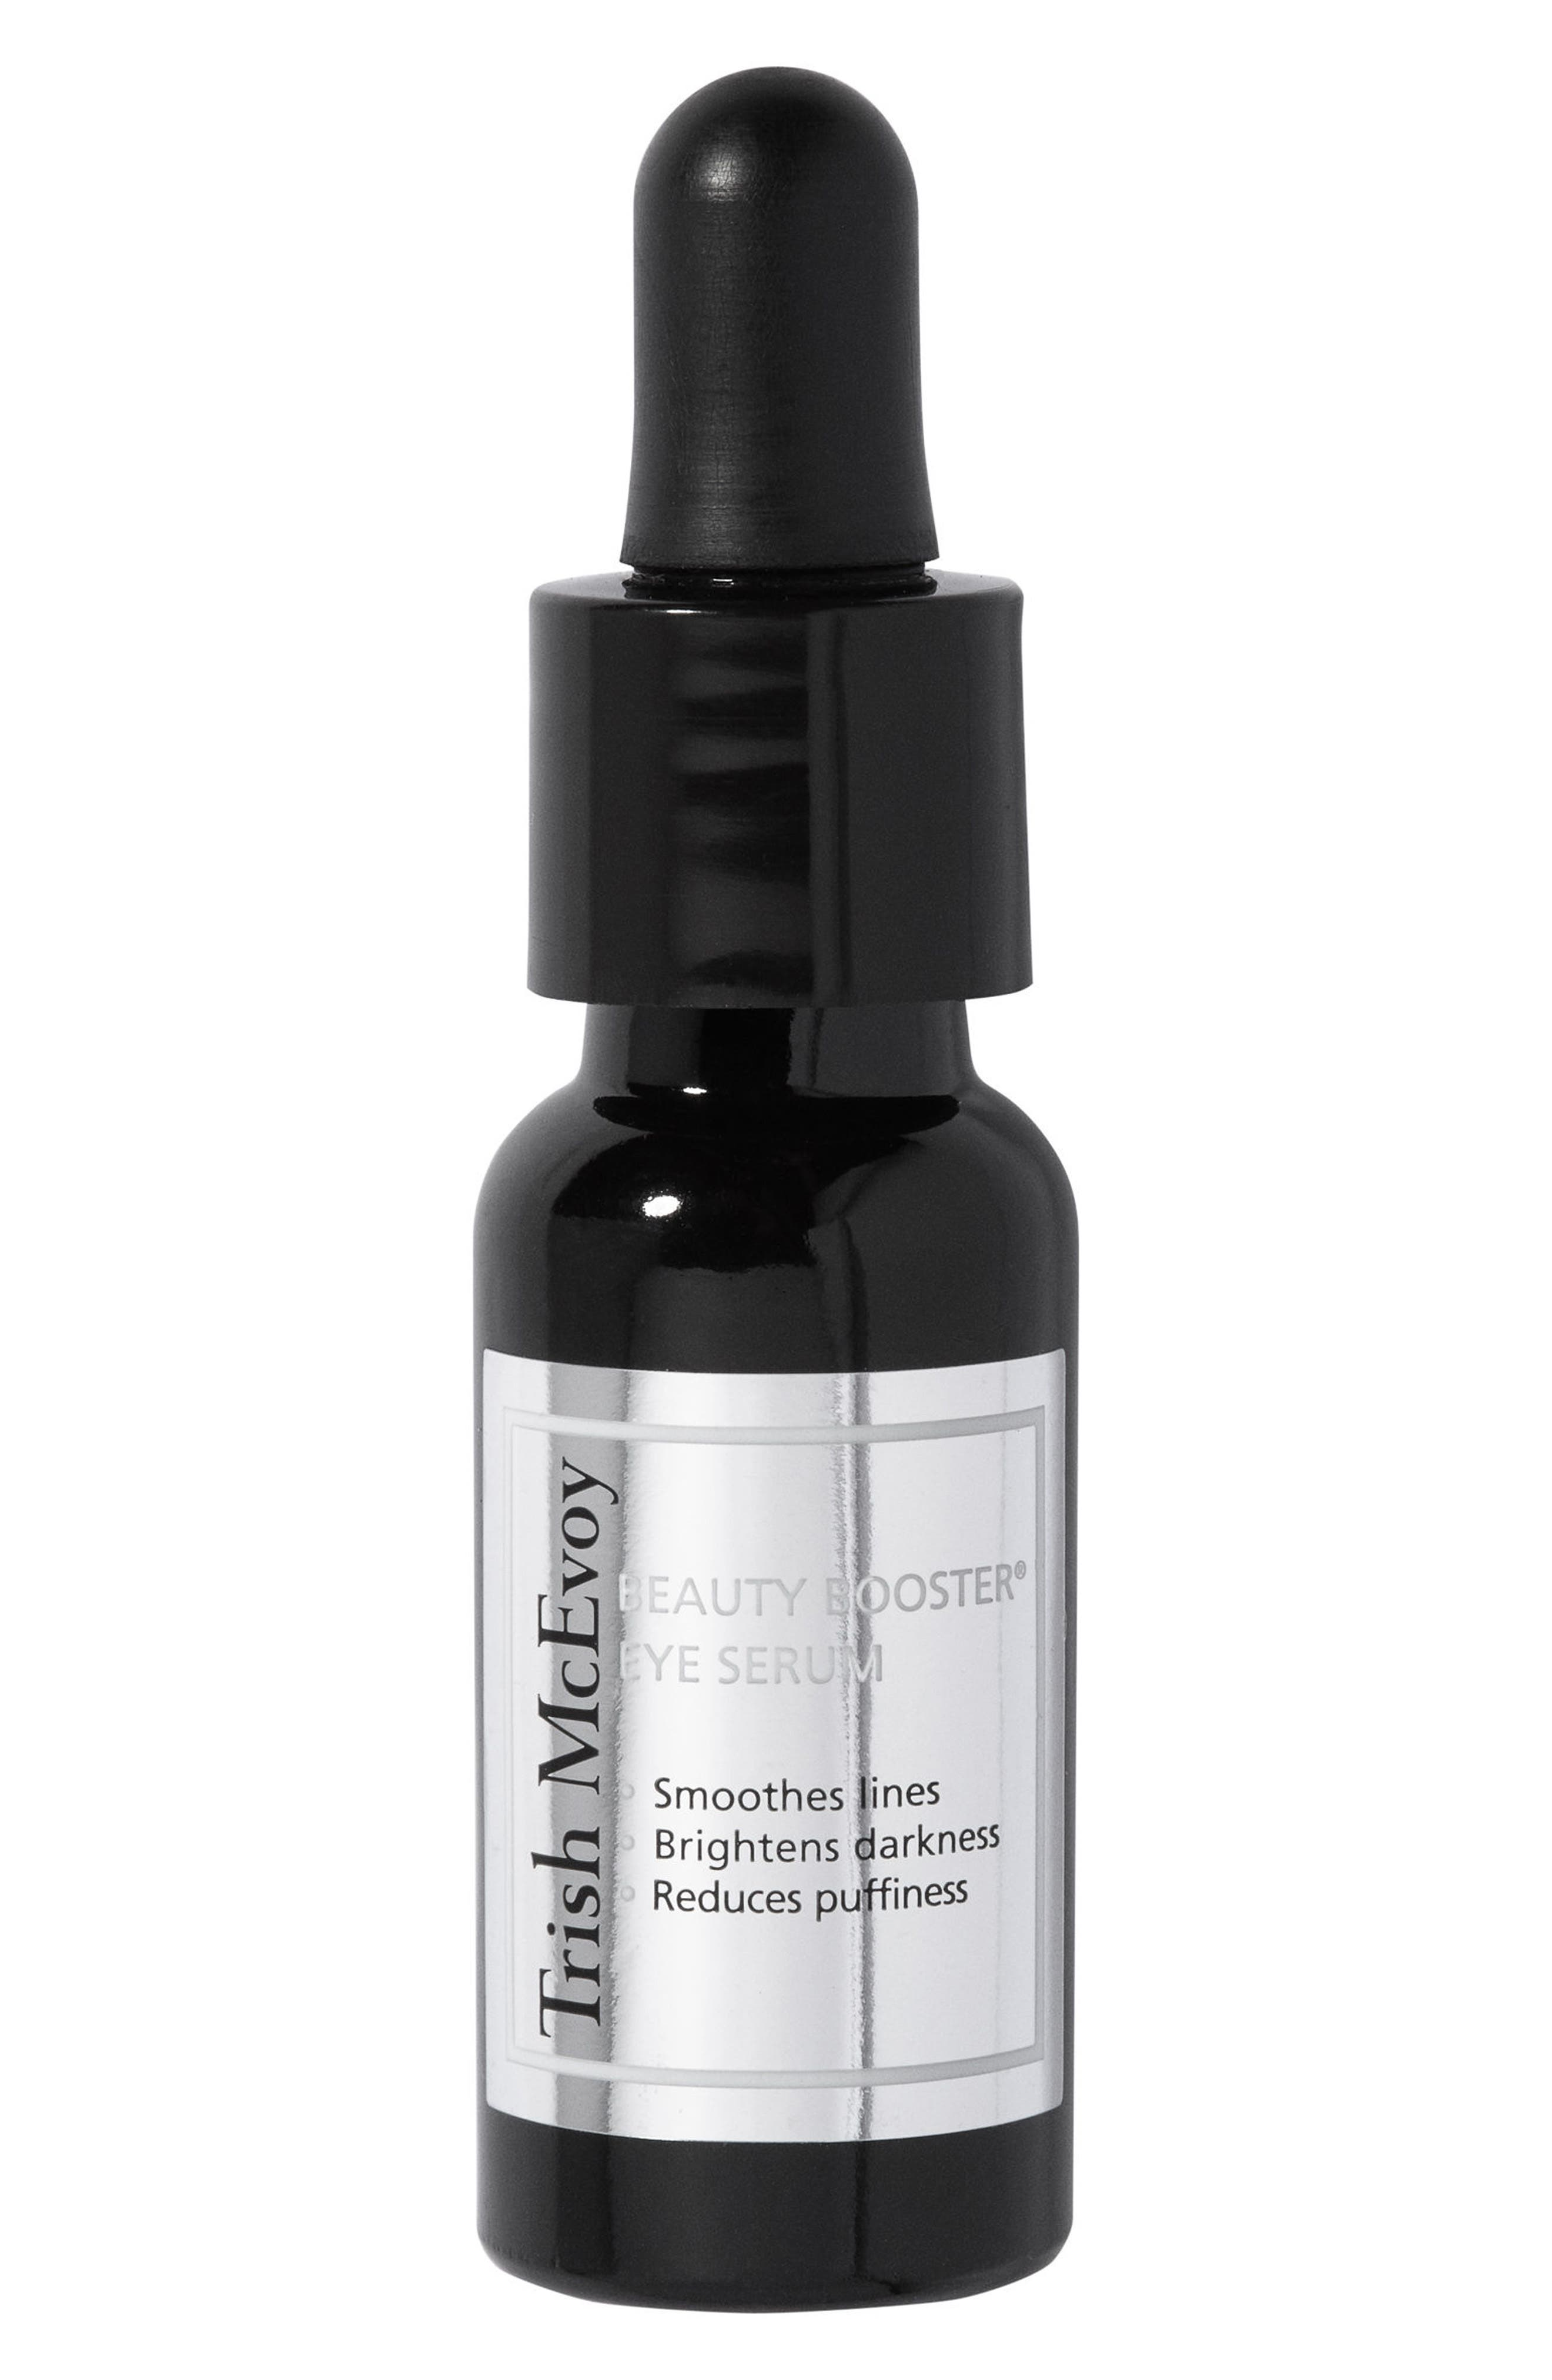 Alternate Image 1 Selected - Trish McEvoy 'Beauty Booster®' Eye Serum